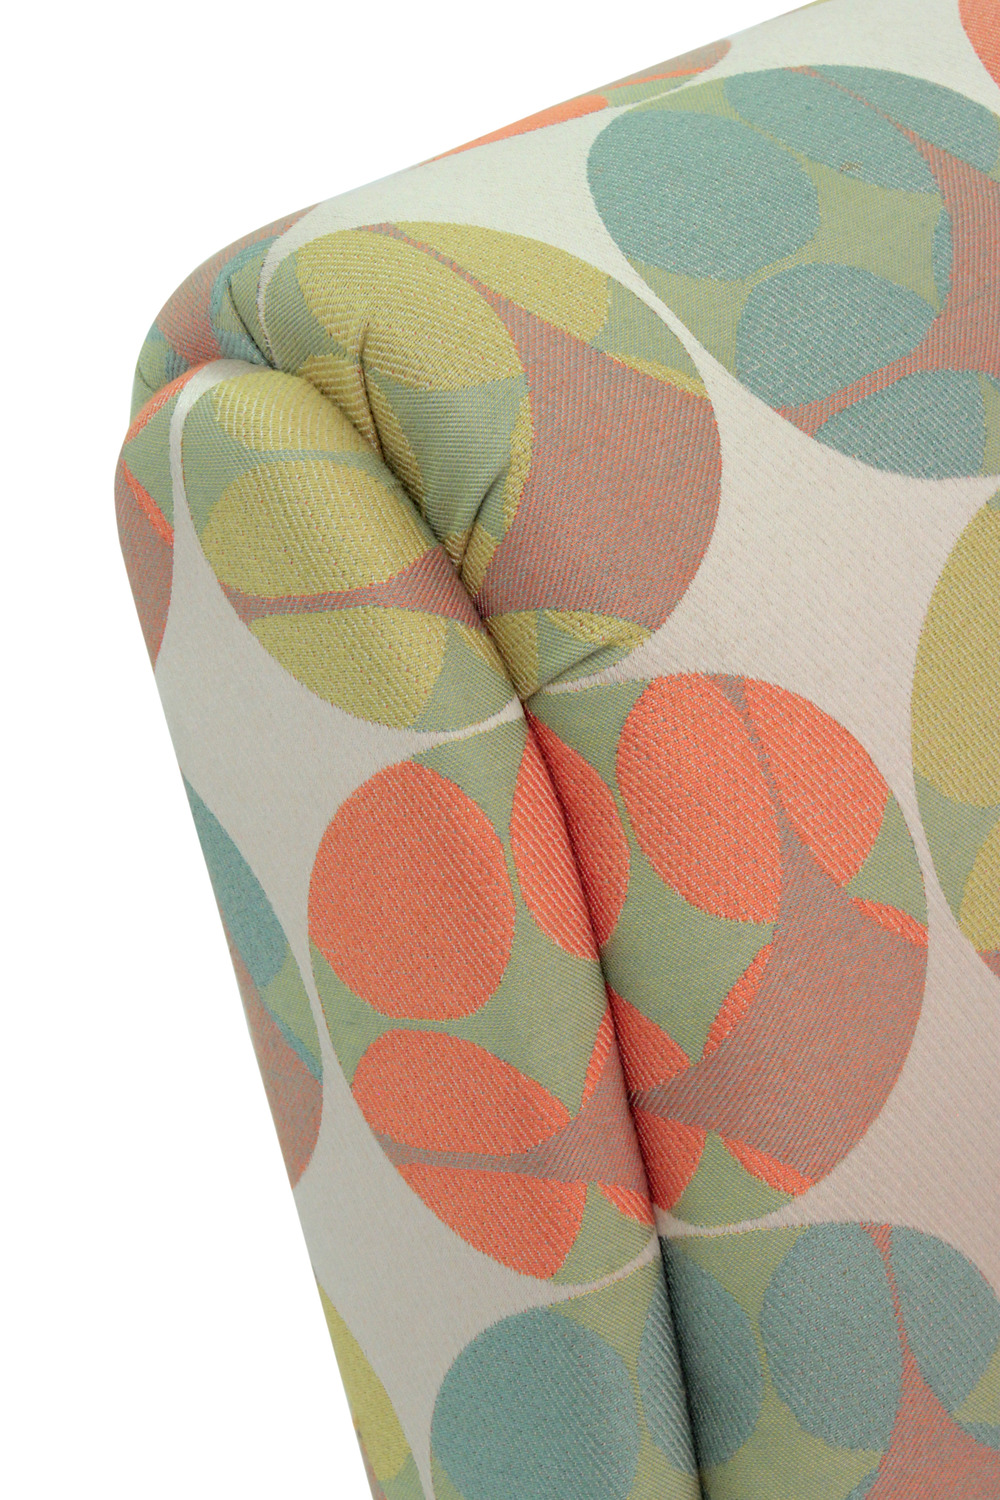 70s 60 geometric fabrics etof4 lucite arms diningchairs55 detail2 hires.jpg